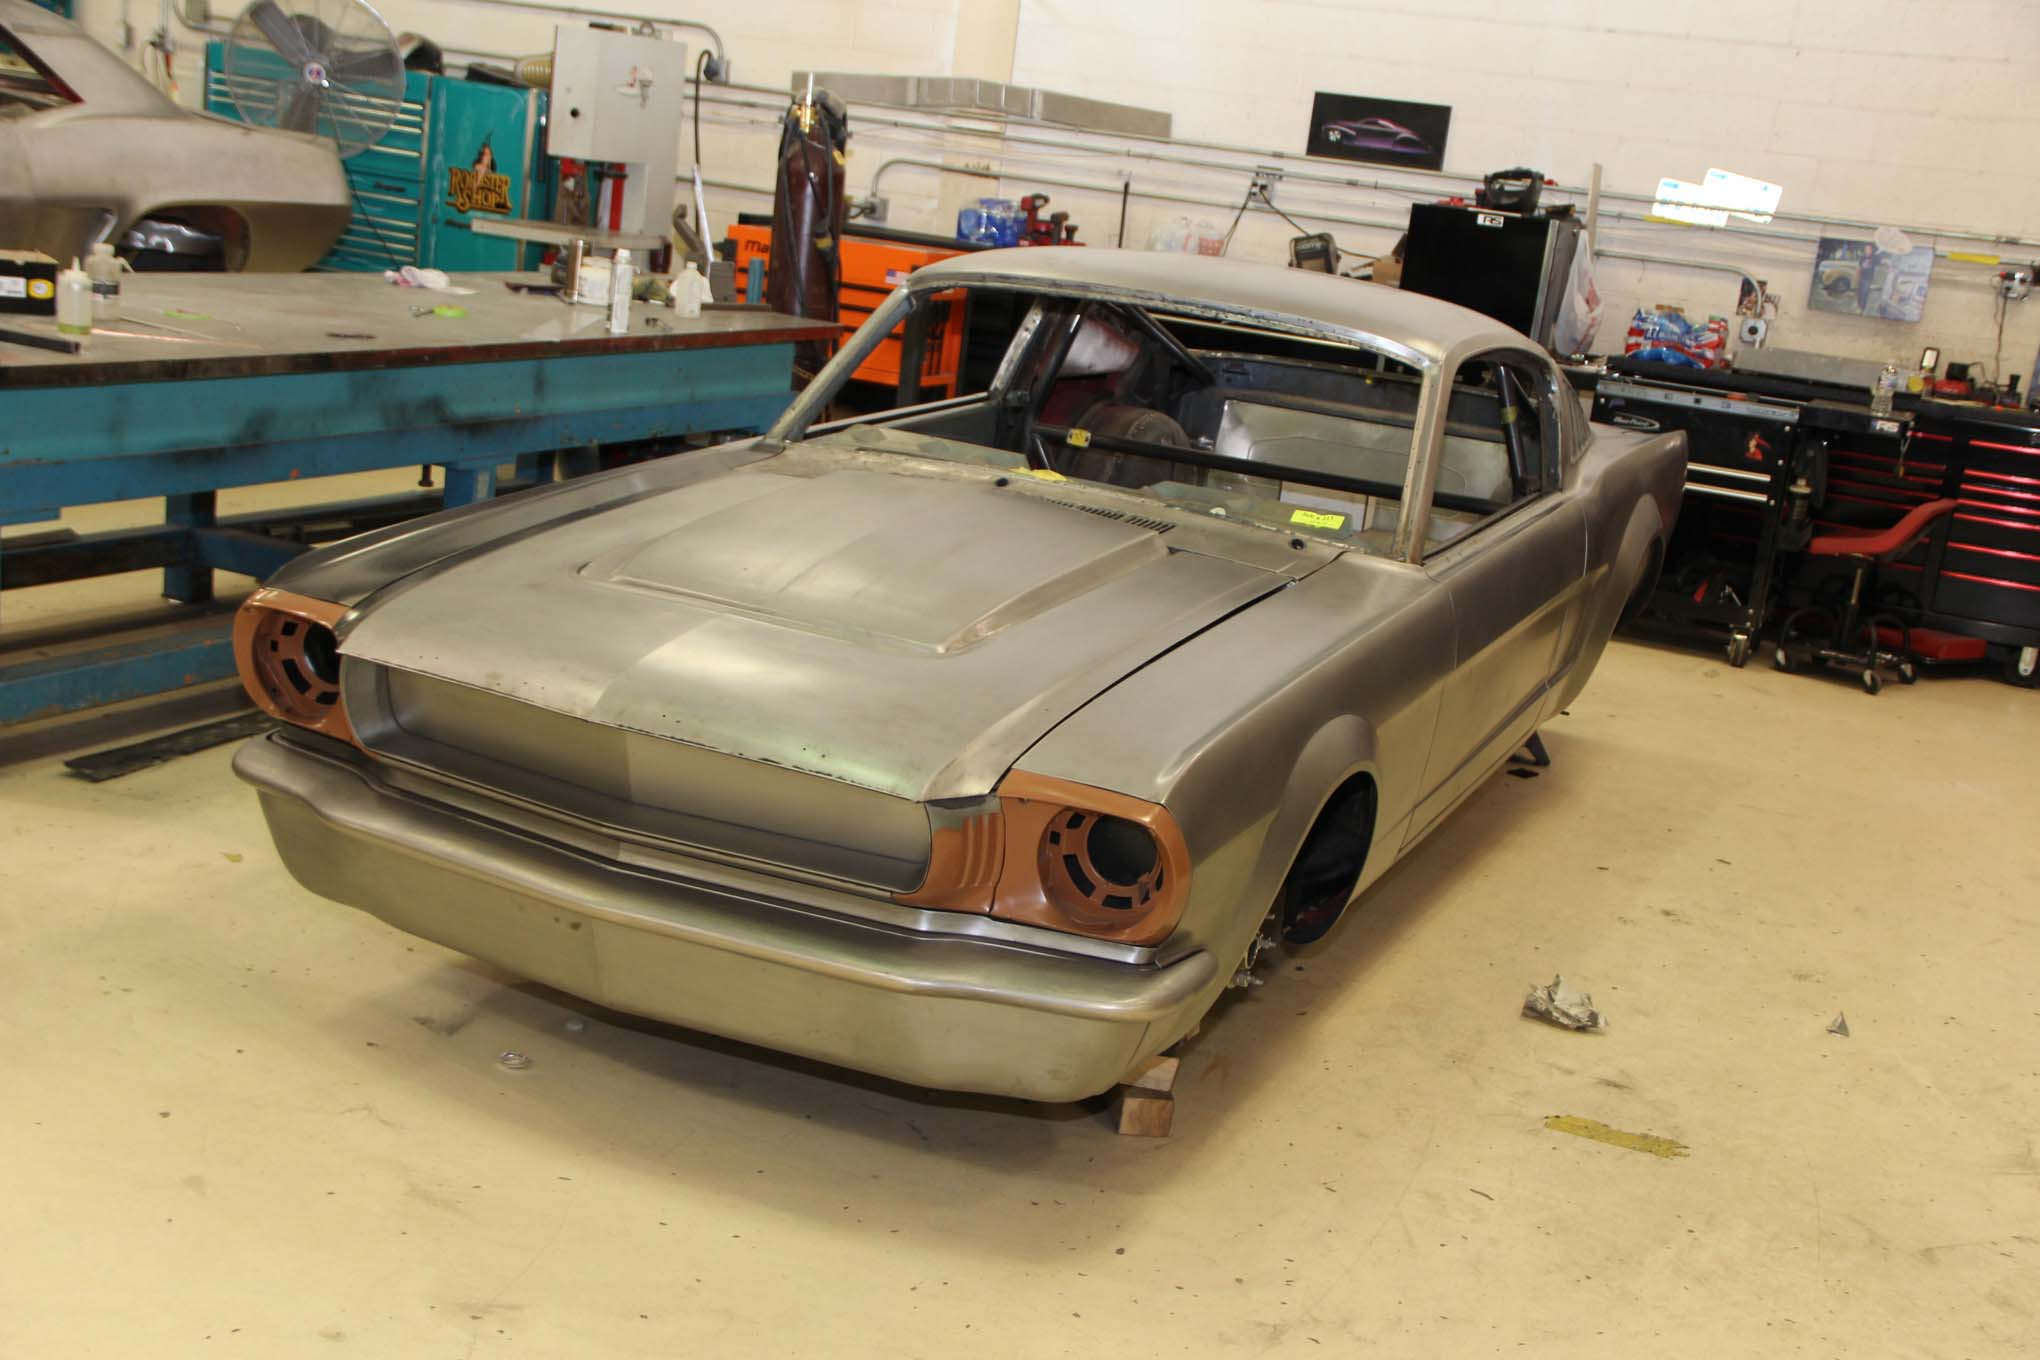 Again, lots of fabrication work on this 1966 Mustang like tasteful flairs, custom fascia, and hood. We also see a 'cage peeking out from the back.